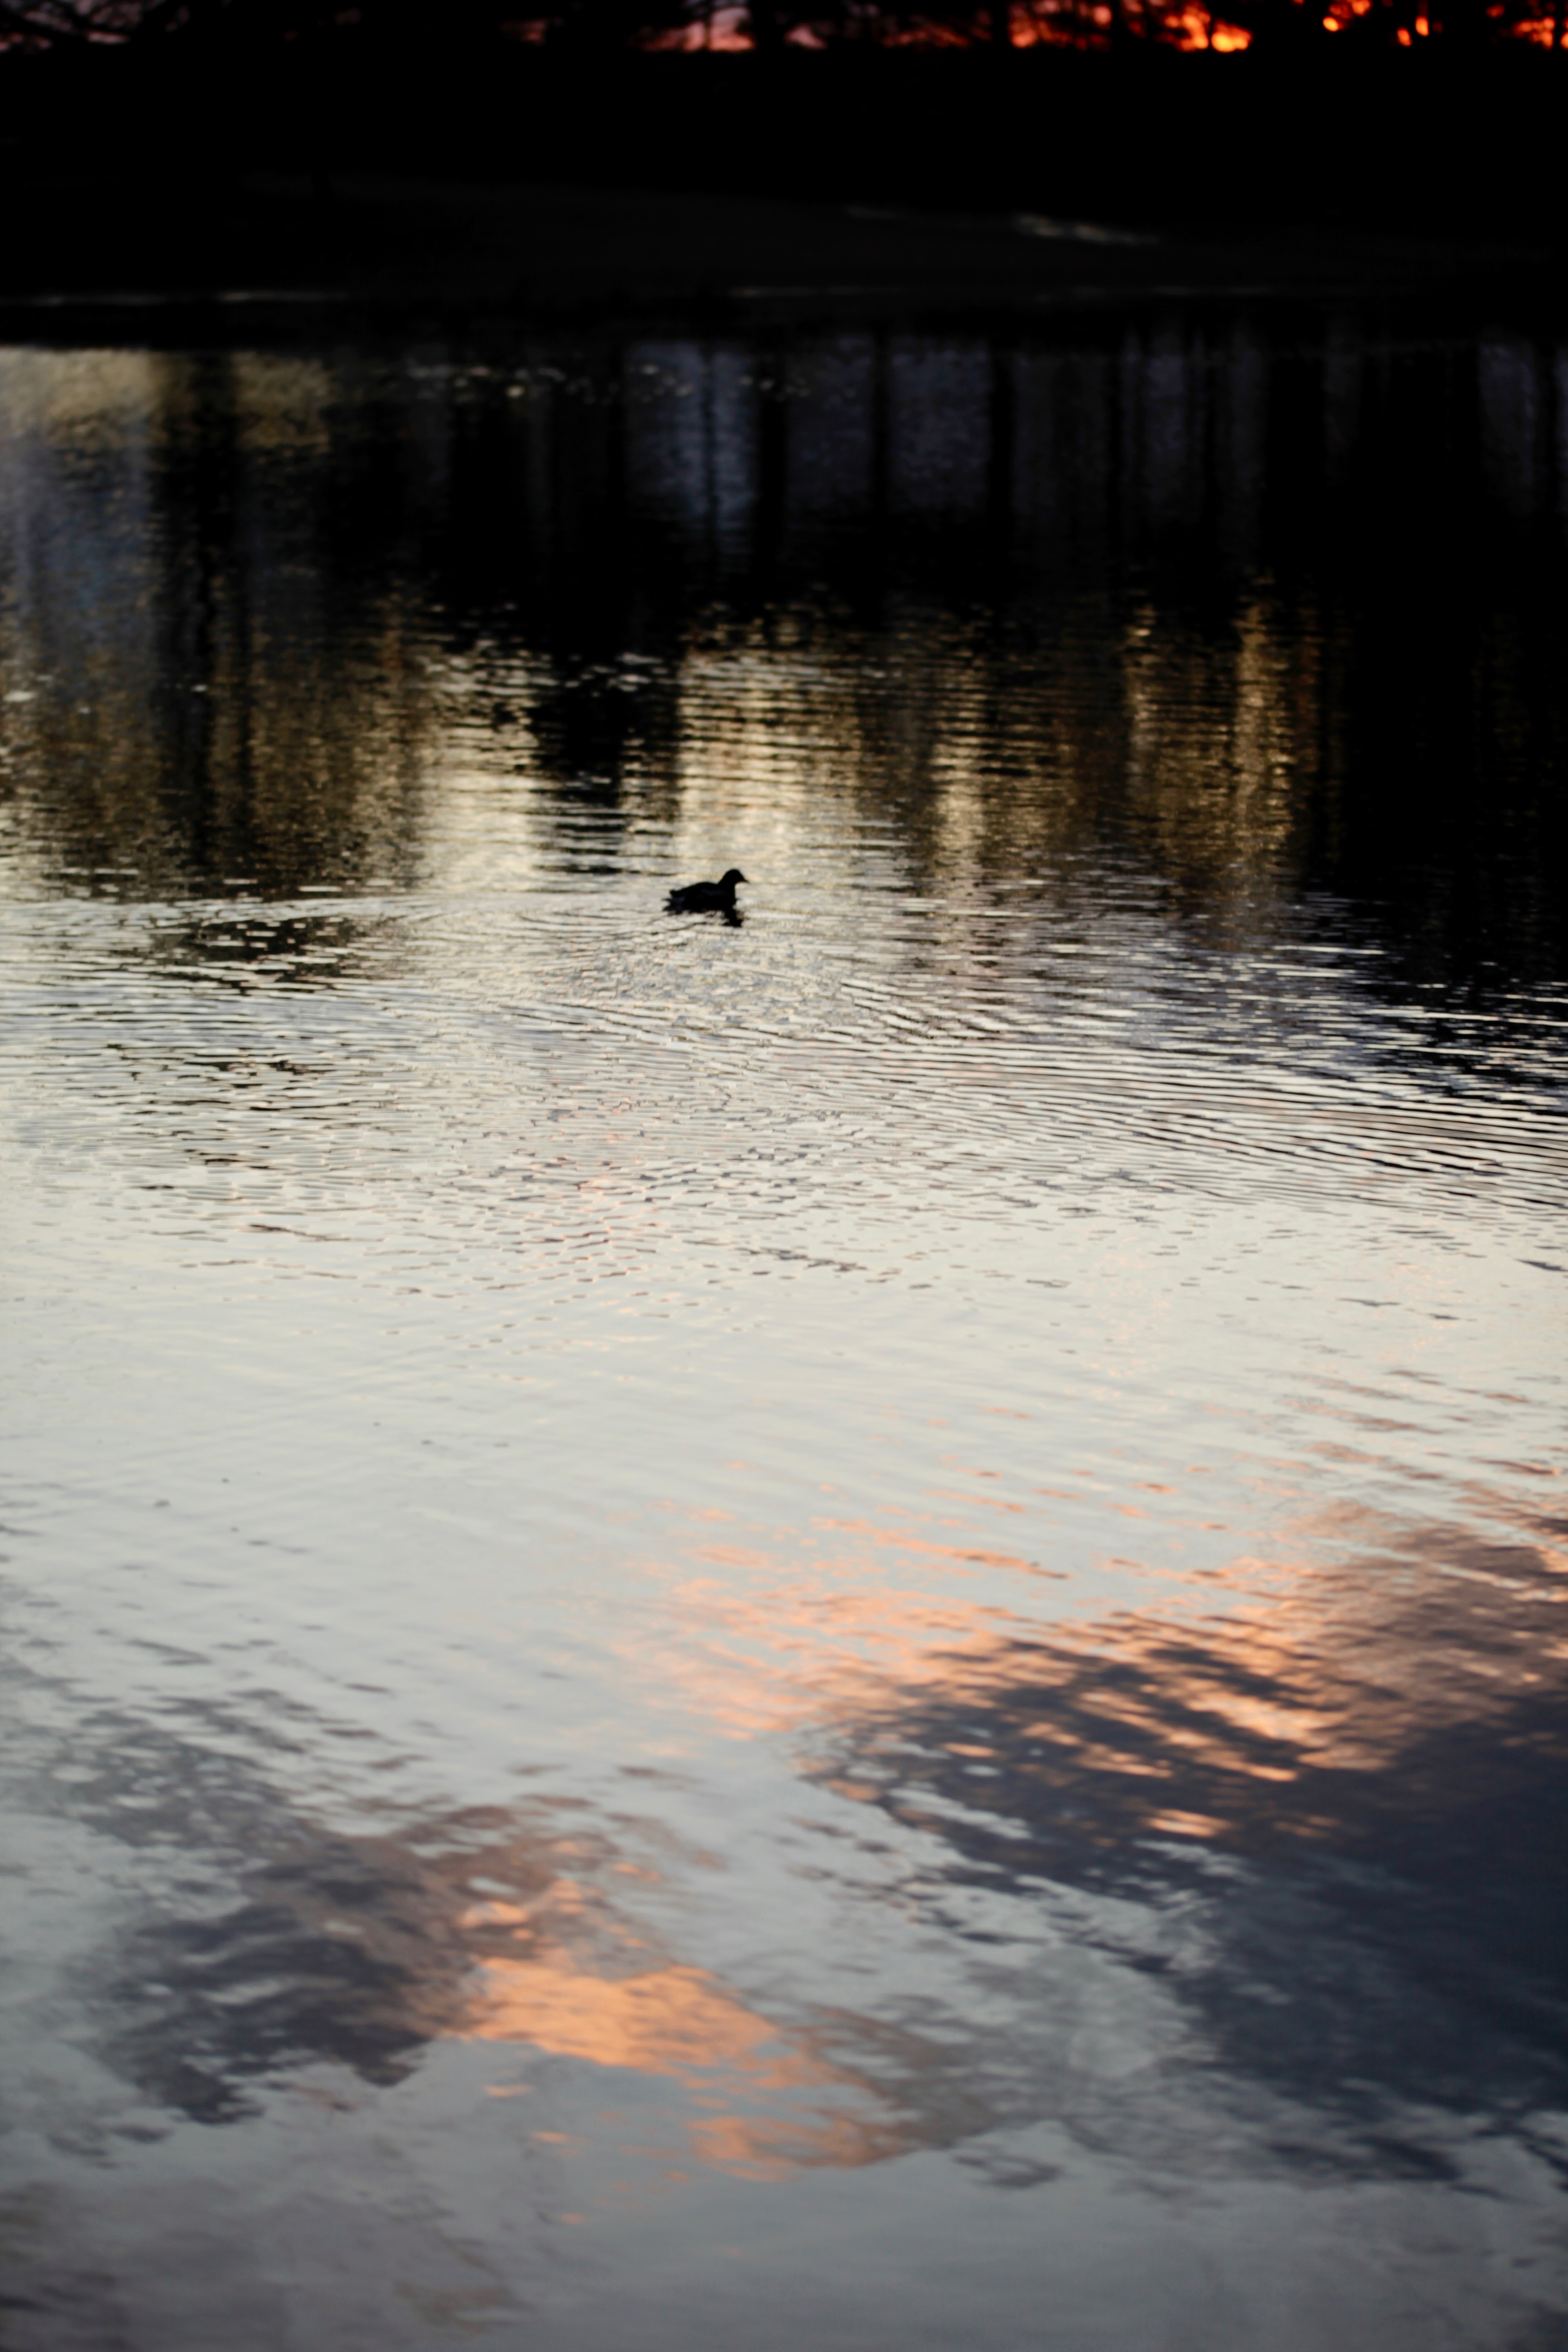 Waterfowl and reflected clouds at sunset